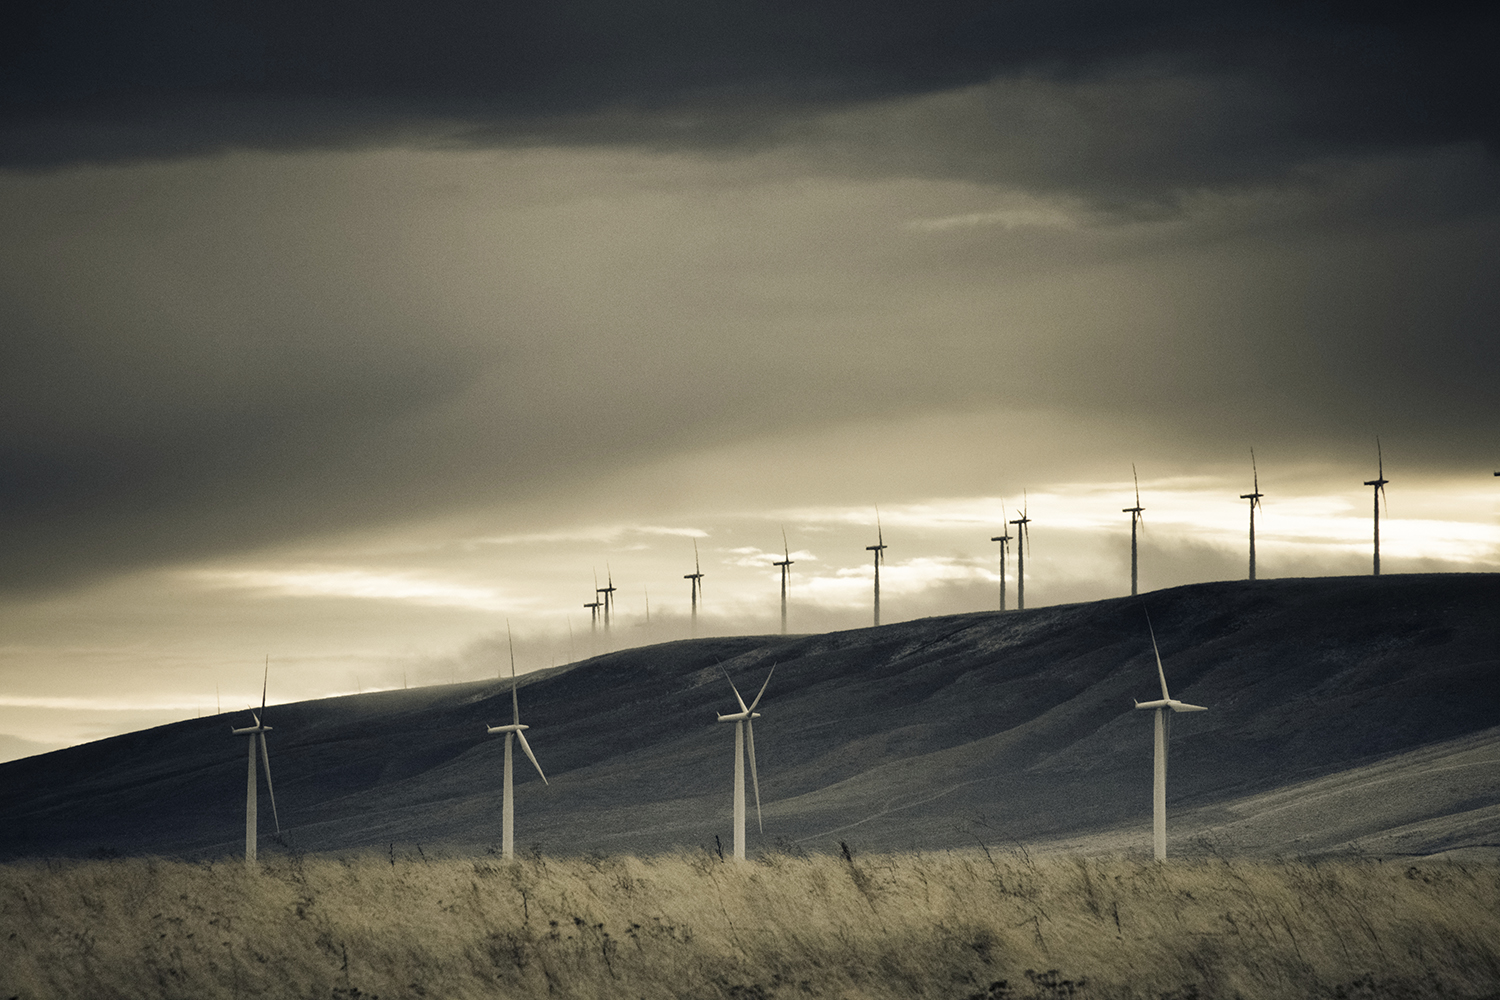 Altra's aftermarket expertise gives new life to aging wind turbines